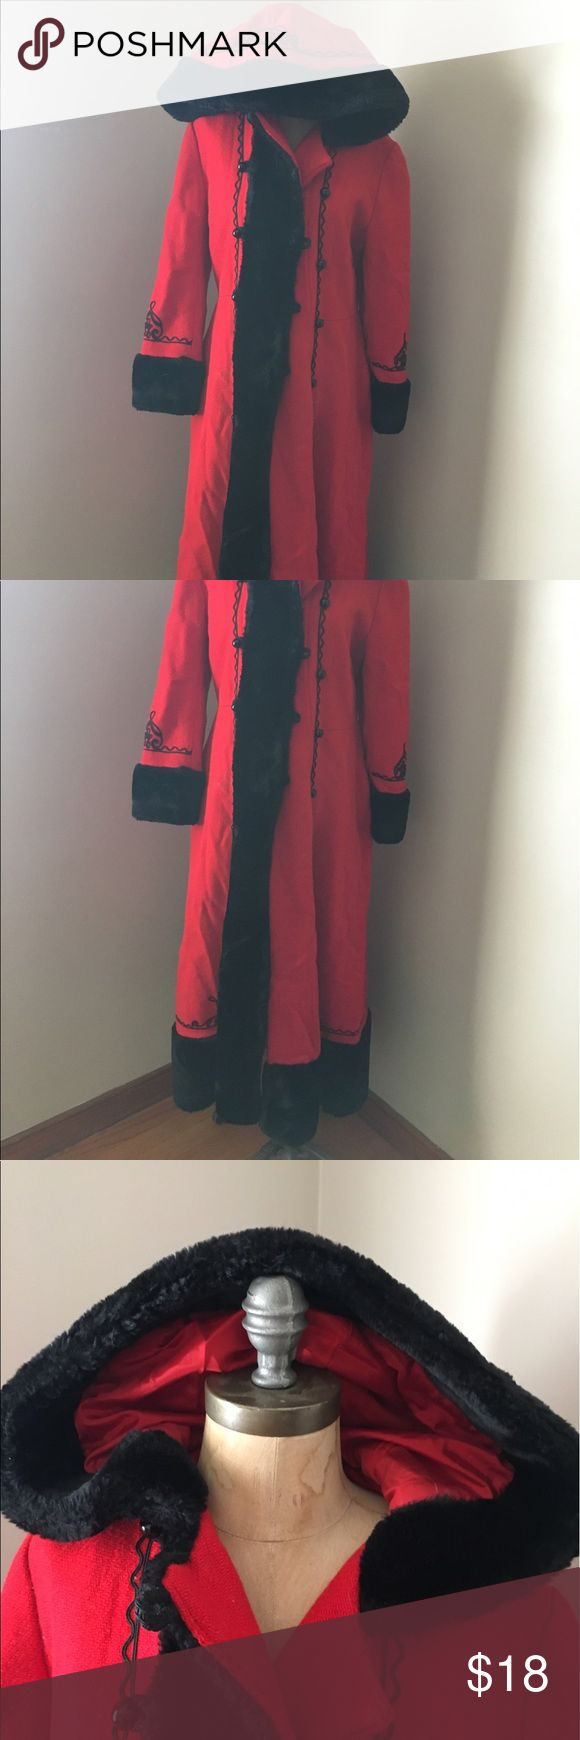 Vintage Red Hooded Coat Heavy winter coat , red and black, nice big hood. Has pockets. No marked tag. I'm 5'7 135 lbs and fits me just right. Arms a tad short and hit just above my wrists. Jackets & Coats Trench Coats